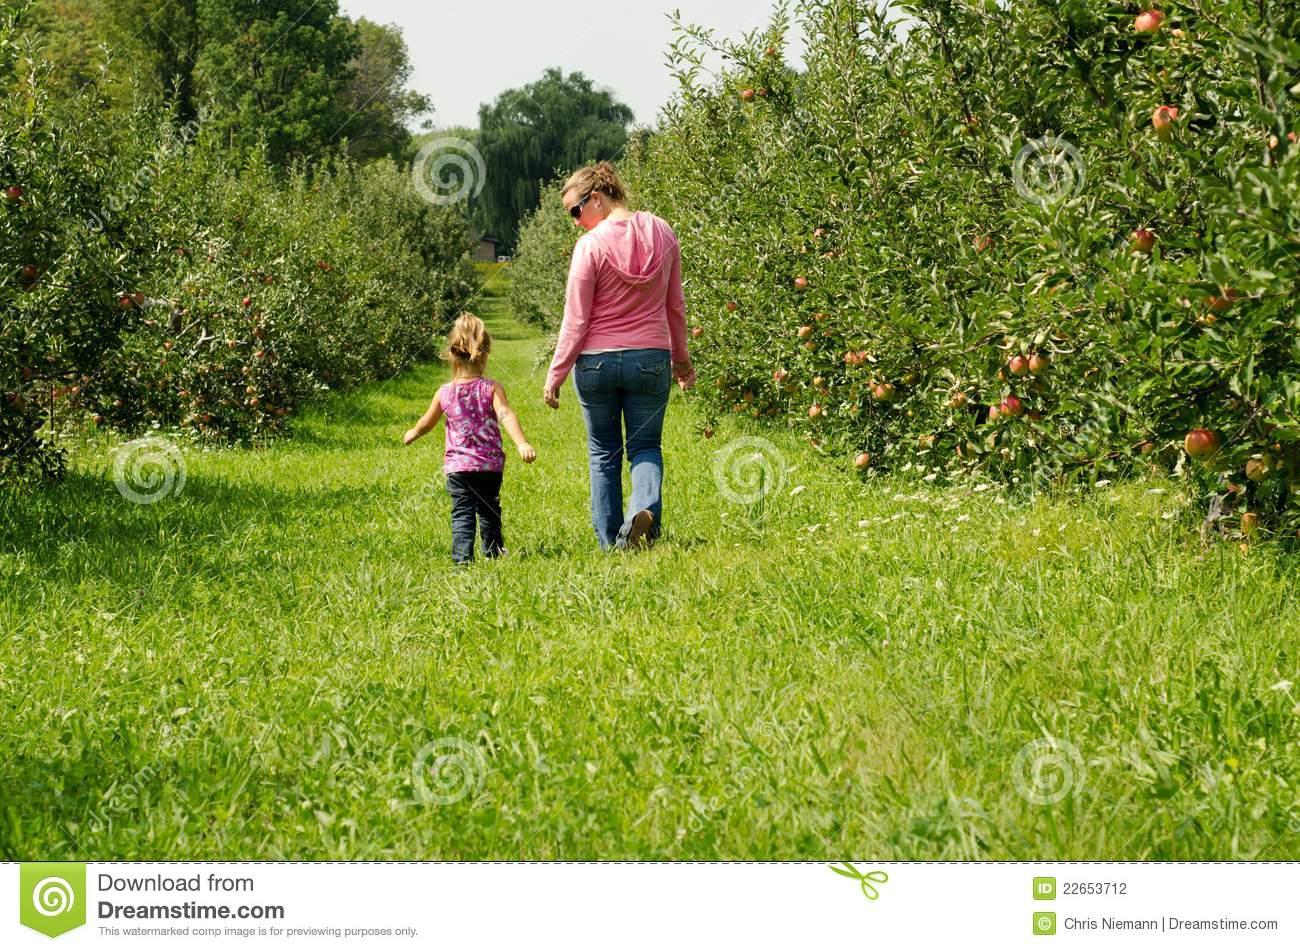 Family In An Orchard Stock Photography  Image 22653712. Enviromental Science Degree Sonic Price Menu. Class 7 Truck For Sale New Crossover Vehicles. East Valley Clinic West Covina. Princeton Sat Review Classes. National Gallery Of Canada Collection. How To Set Up Domain Name Moving Truck Price. Cable Tv Of East Alabama The Apartment Movers. Katherine Heigl Movies List Best Laptop Ever